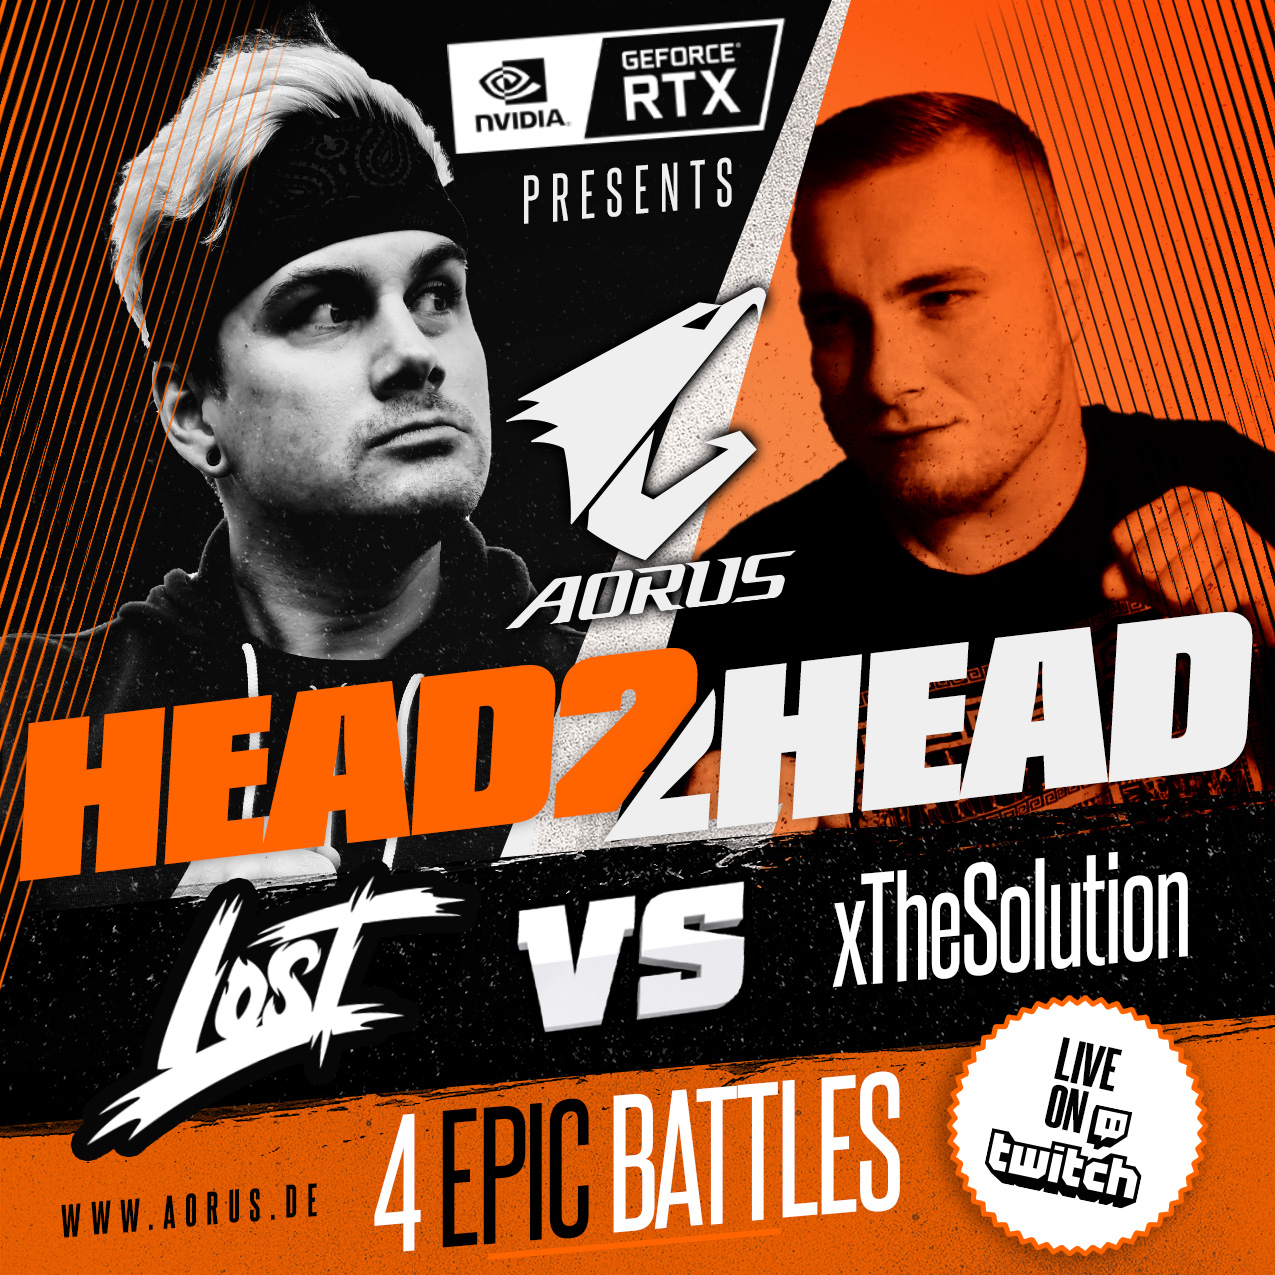 AORUS #HEAD2HEAD Stream Battle powered by NVIDIA